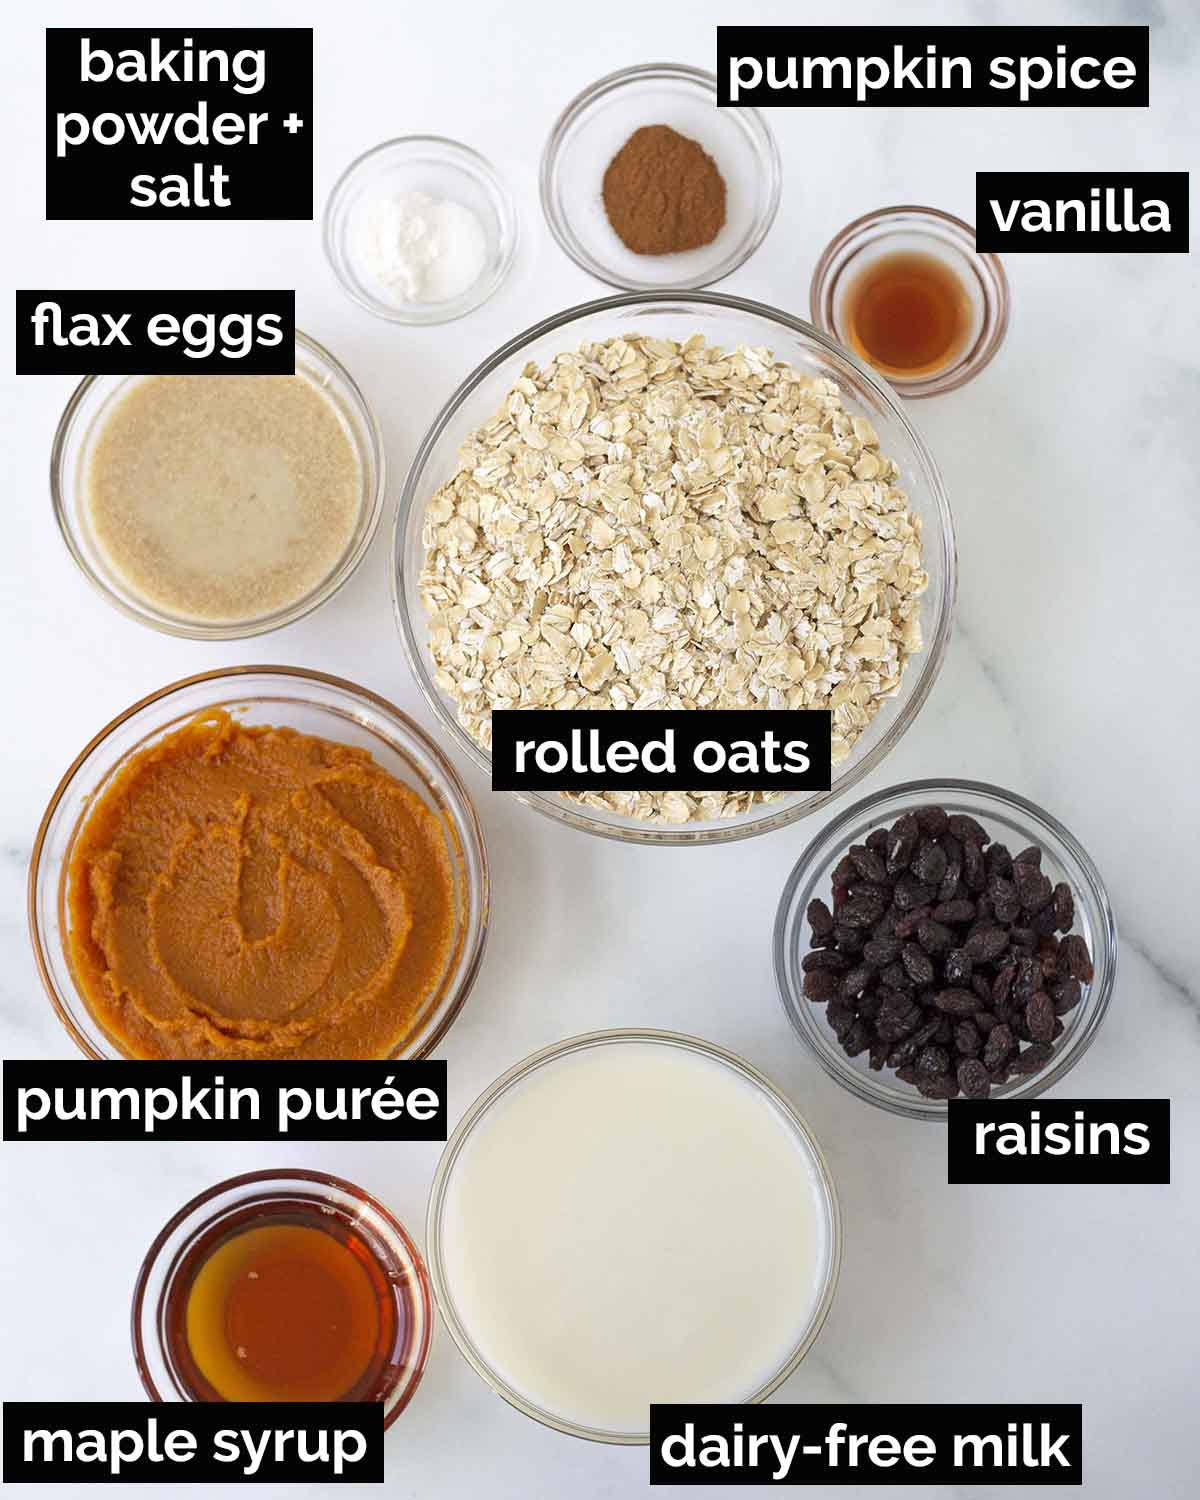 An overhead shot showing all the ingredients needed to make baked vegan oatmeal with pumpkin.